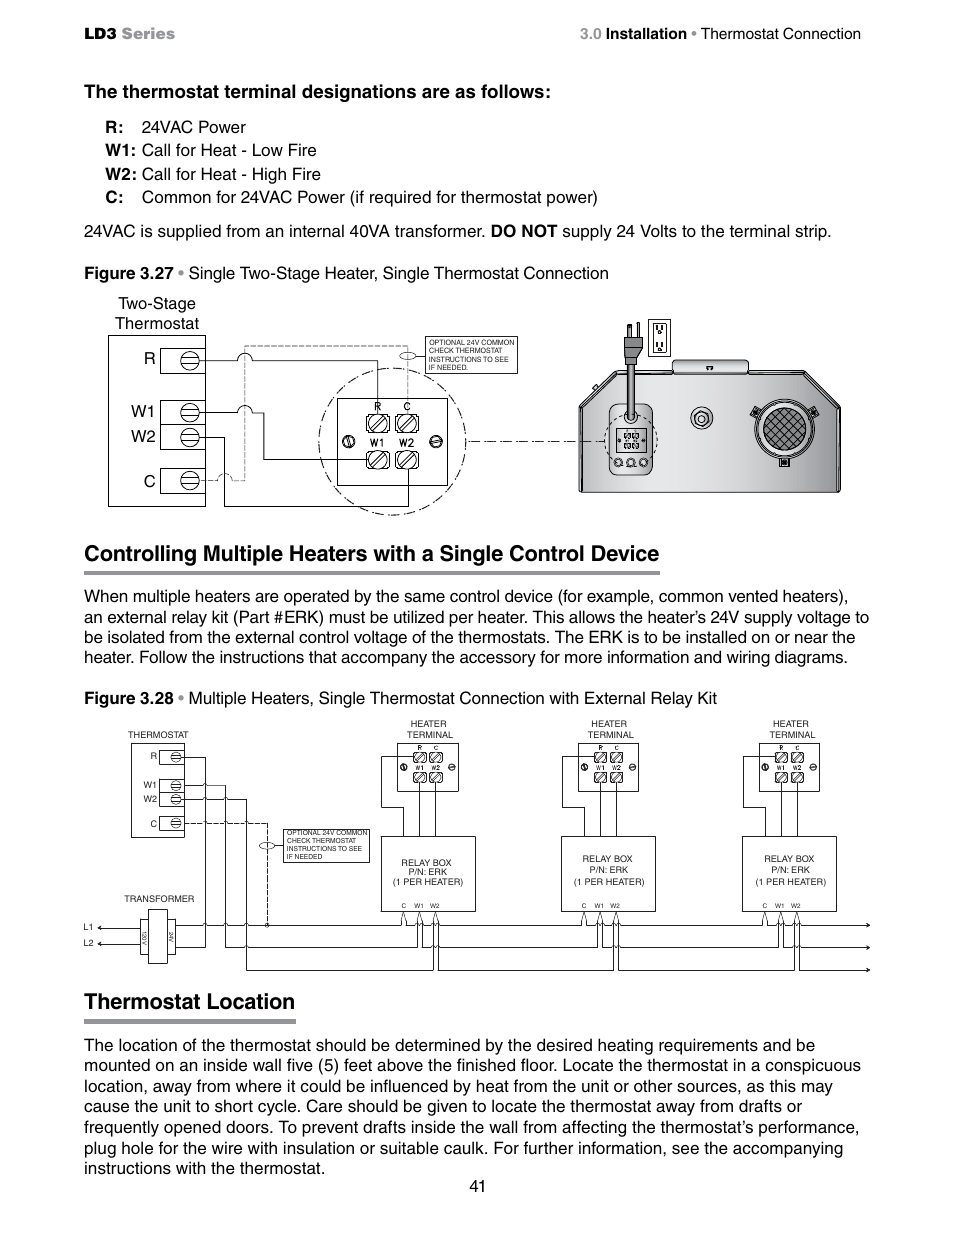 medium resolution of thermostat location cr w1 w2 two stage thermostat detroit radiant products company ld3